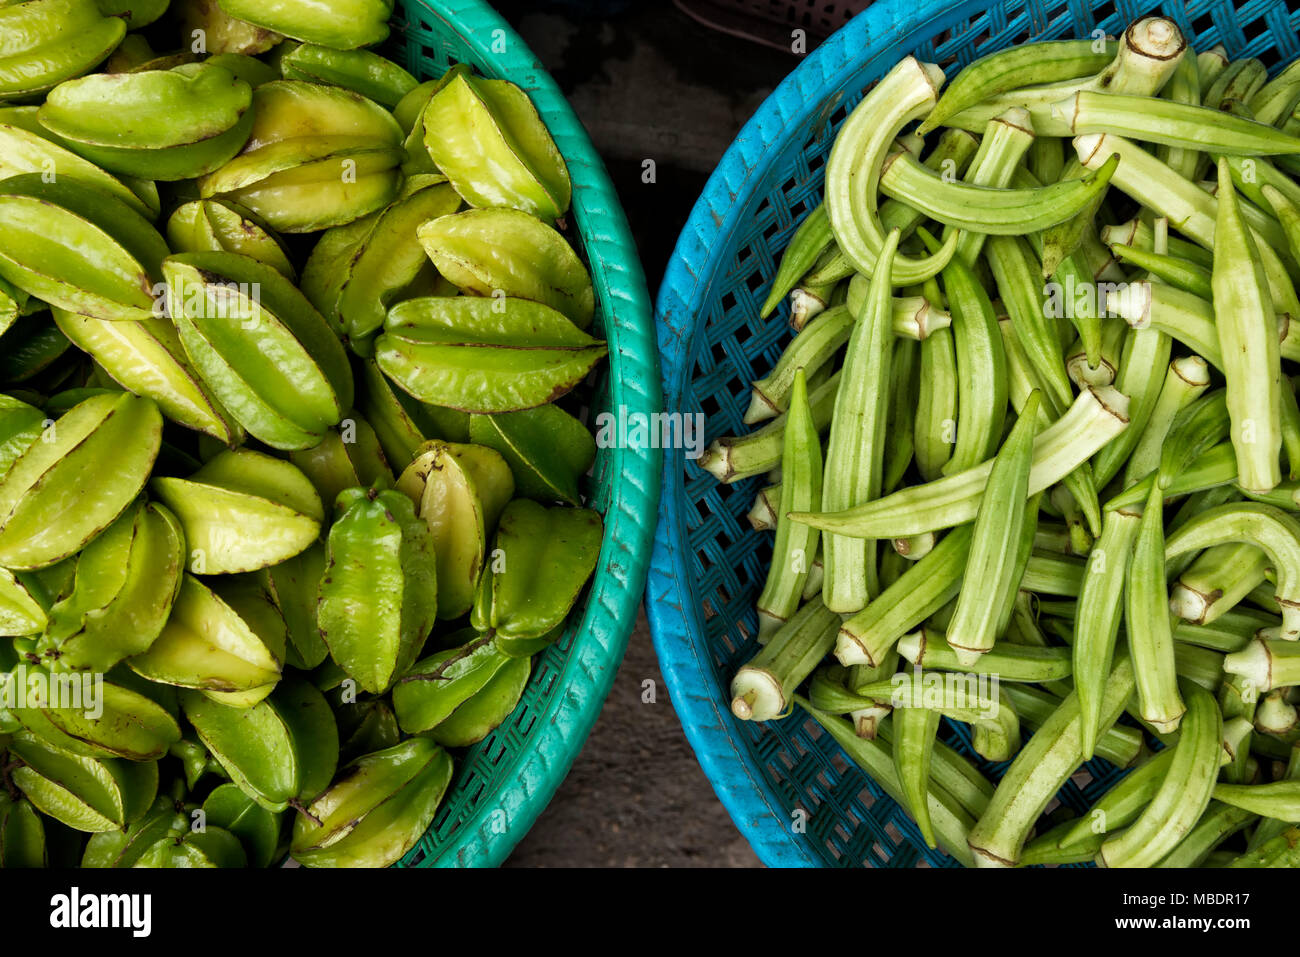 Baskets of star fruits and okra - Stock Image